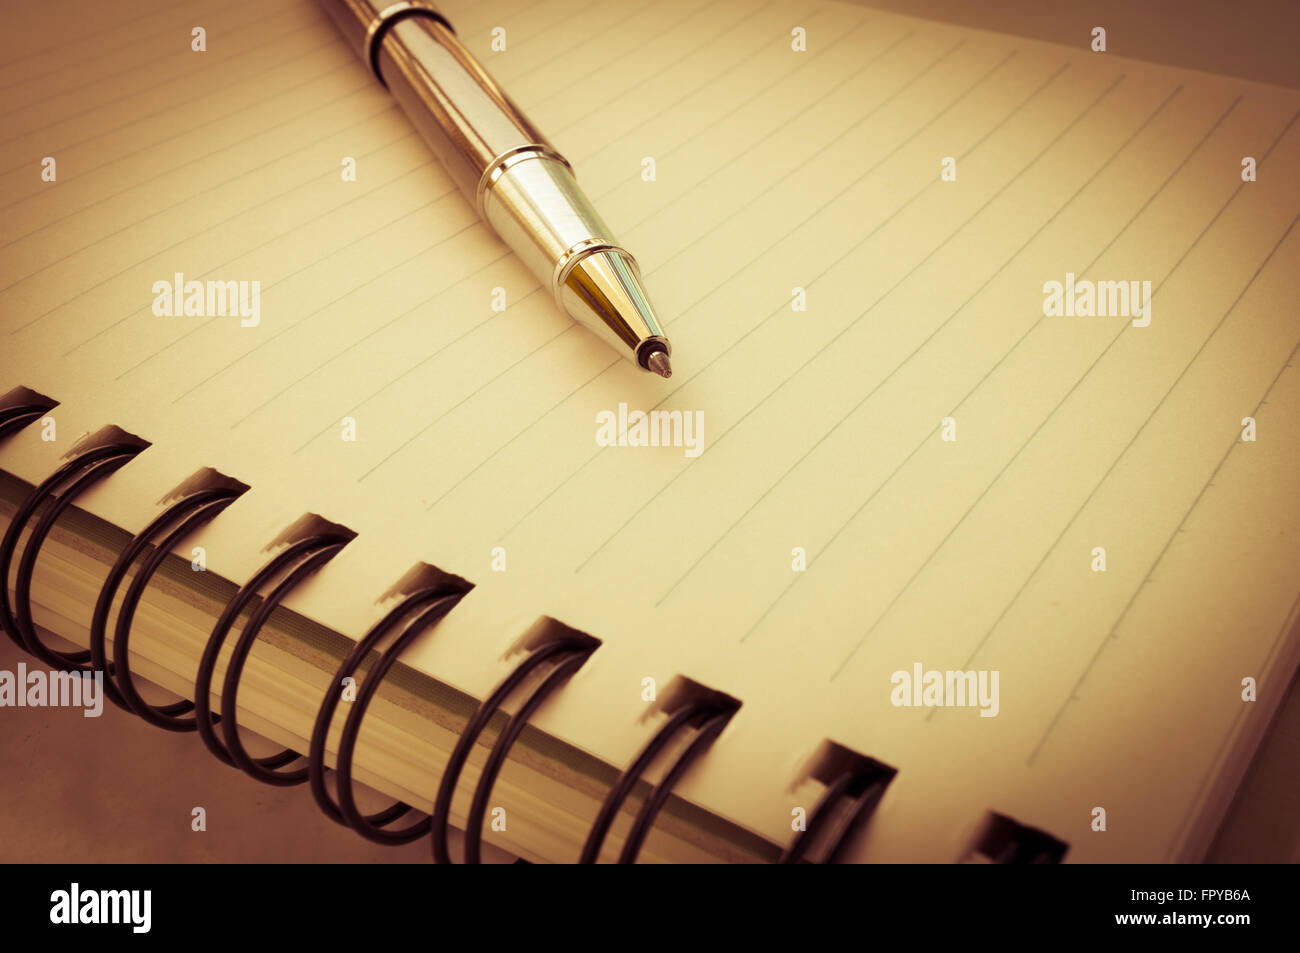 Metallic ball pen on notebook in vintage style.Selective focus. Stock Photo